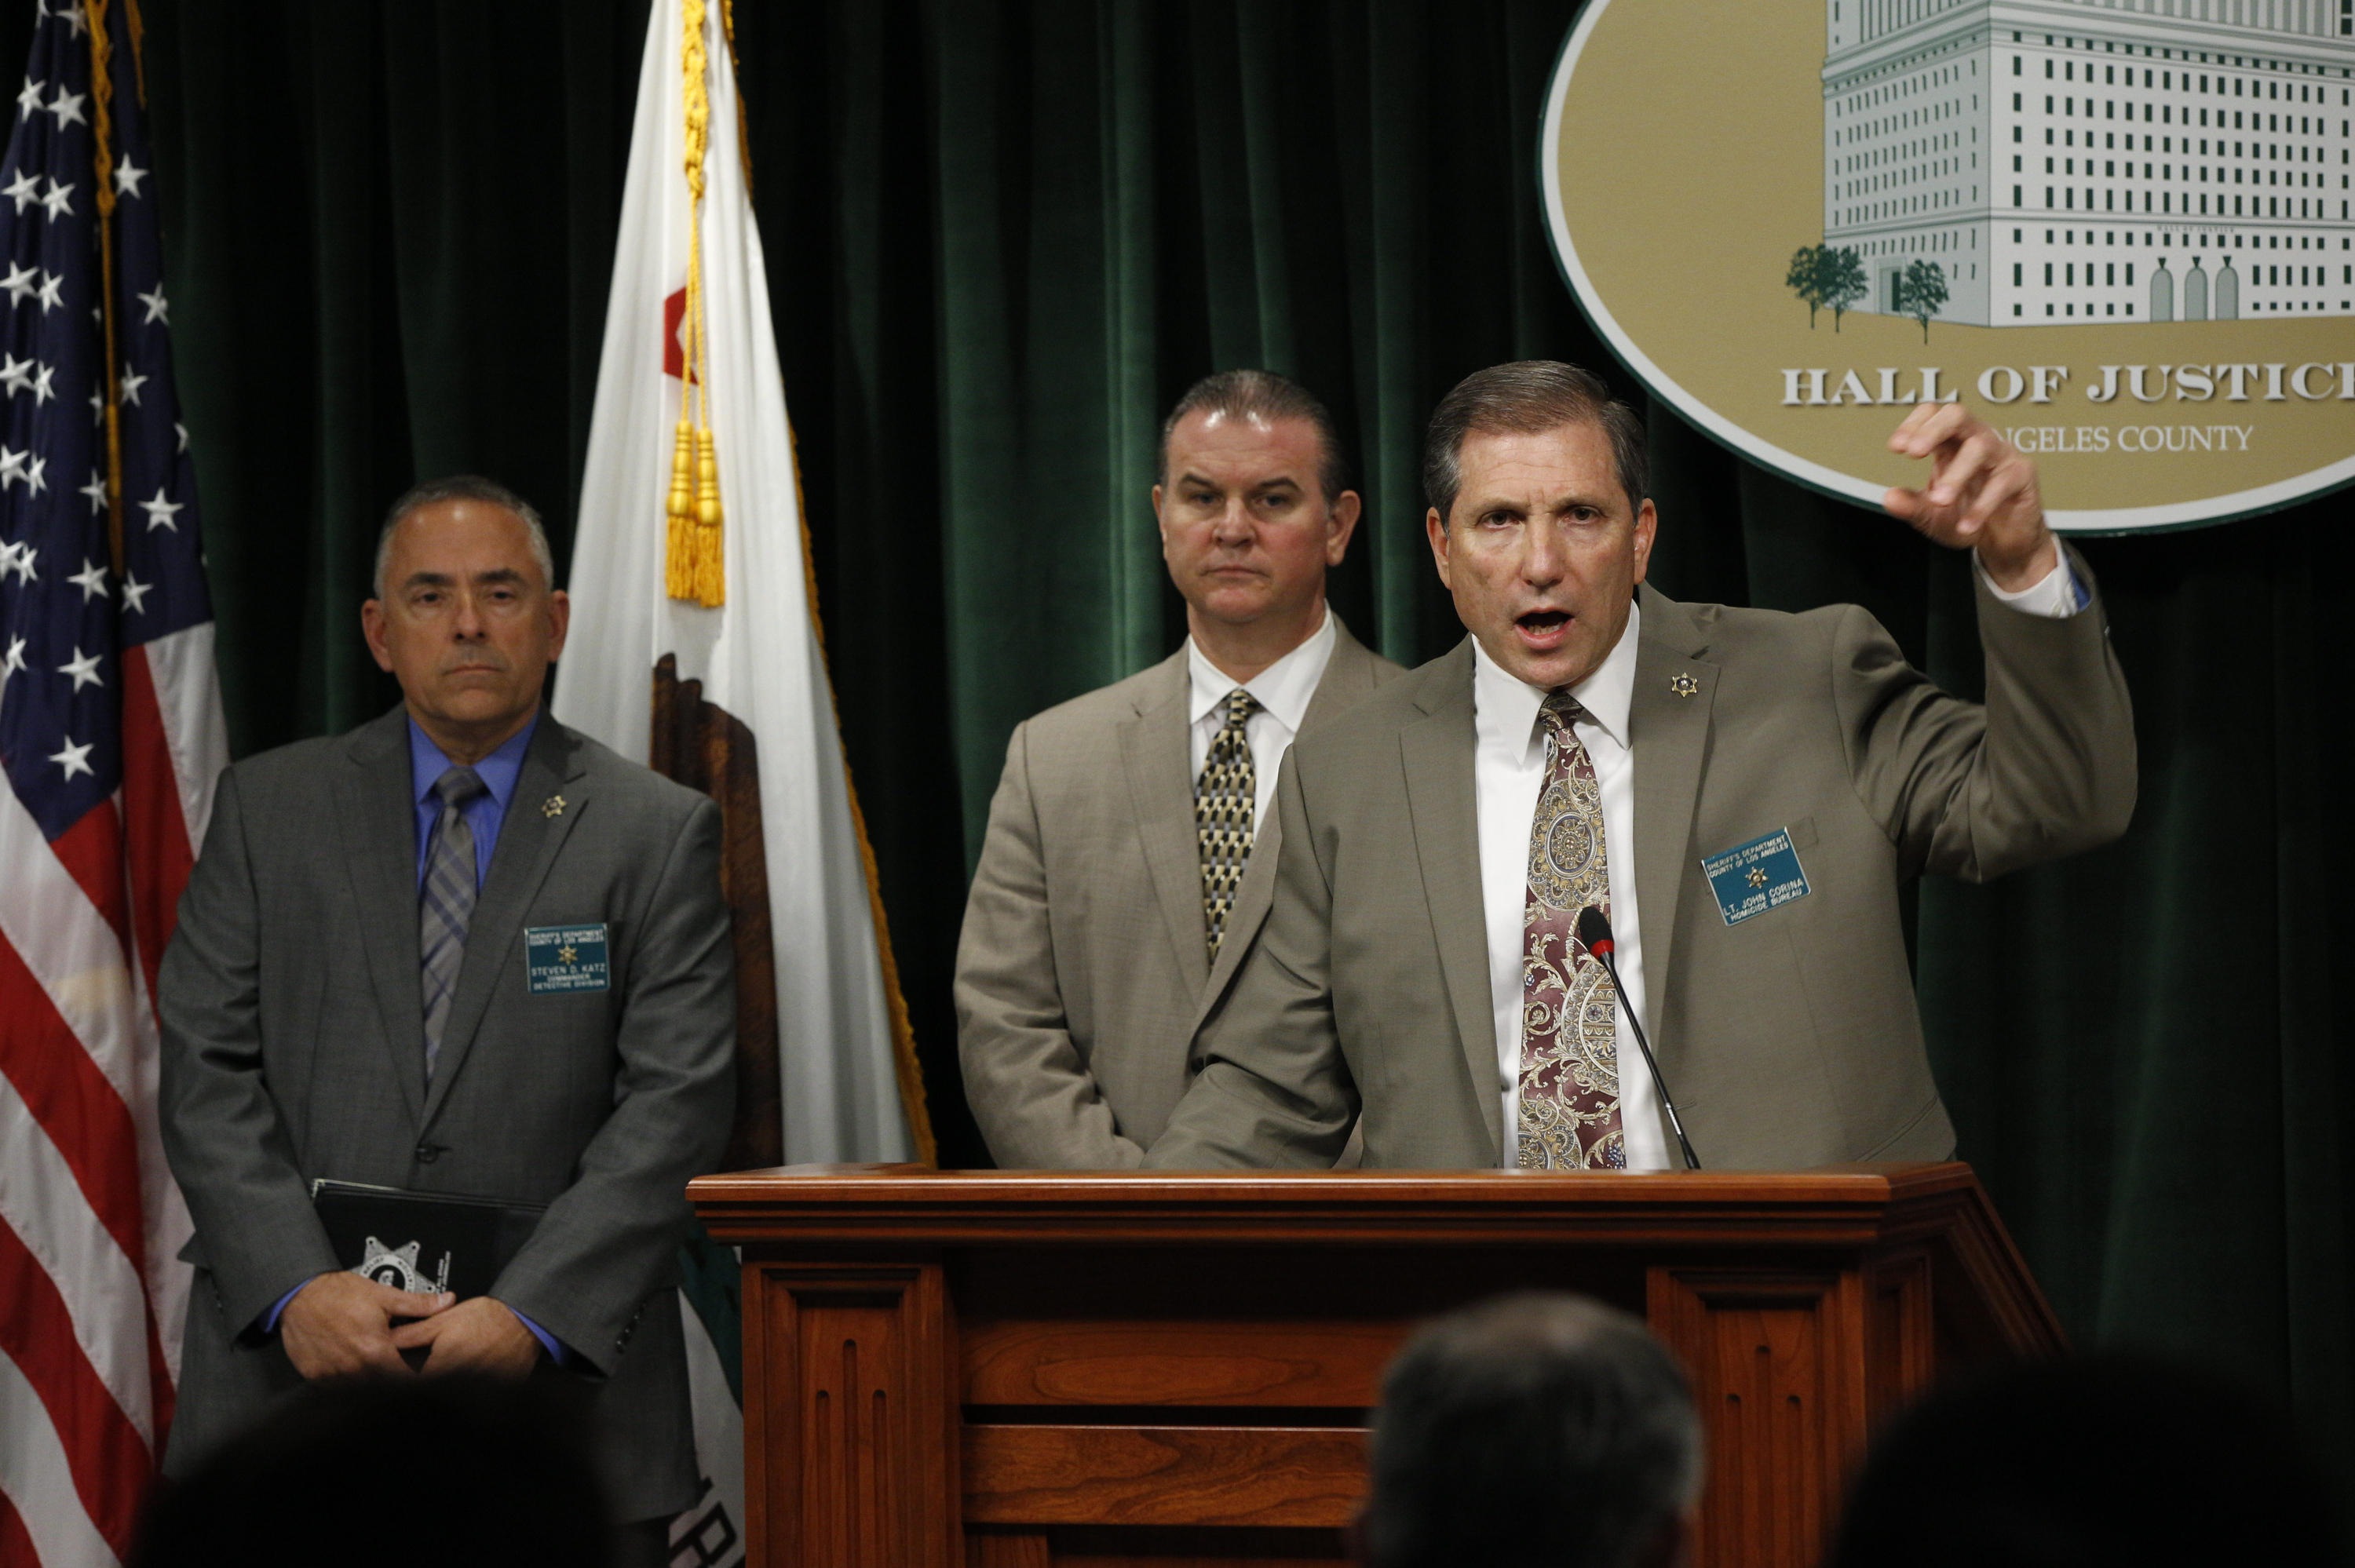 Los Angeles County Sheriff's Department officials, Commander Steve Katz, left, and Capt. Christopher Bergner, center, look on as Lt. John Corina, right, discusses the most recent details of the Natalie Wood death investigation at a news conference in Los Angeles, Monday, Feb. 5, 2018. Corina is hoping renewed interest in the 1981 death of Wood in the ocean off Southern California will produce more witnesses to shed light on what happened. (AP Photo/Damian Dovarganes)